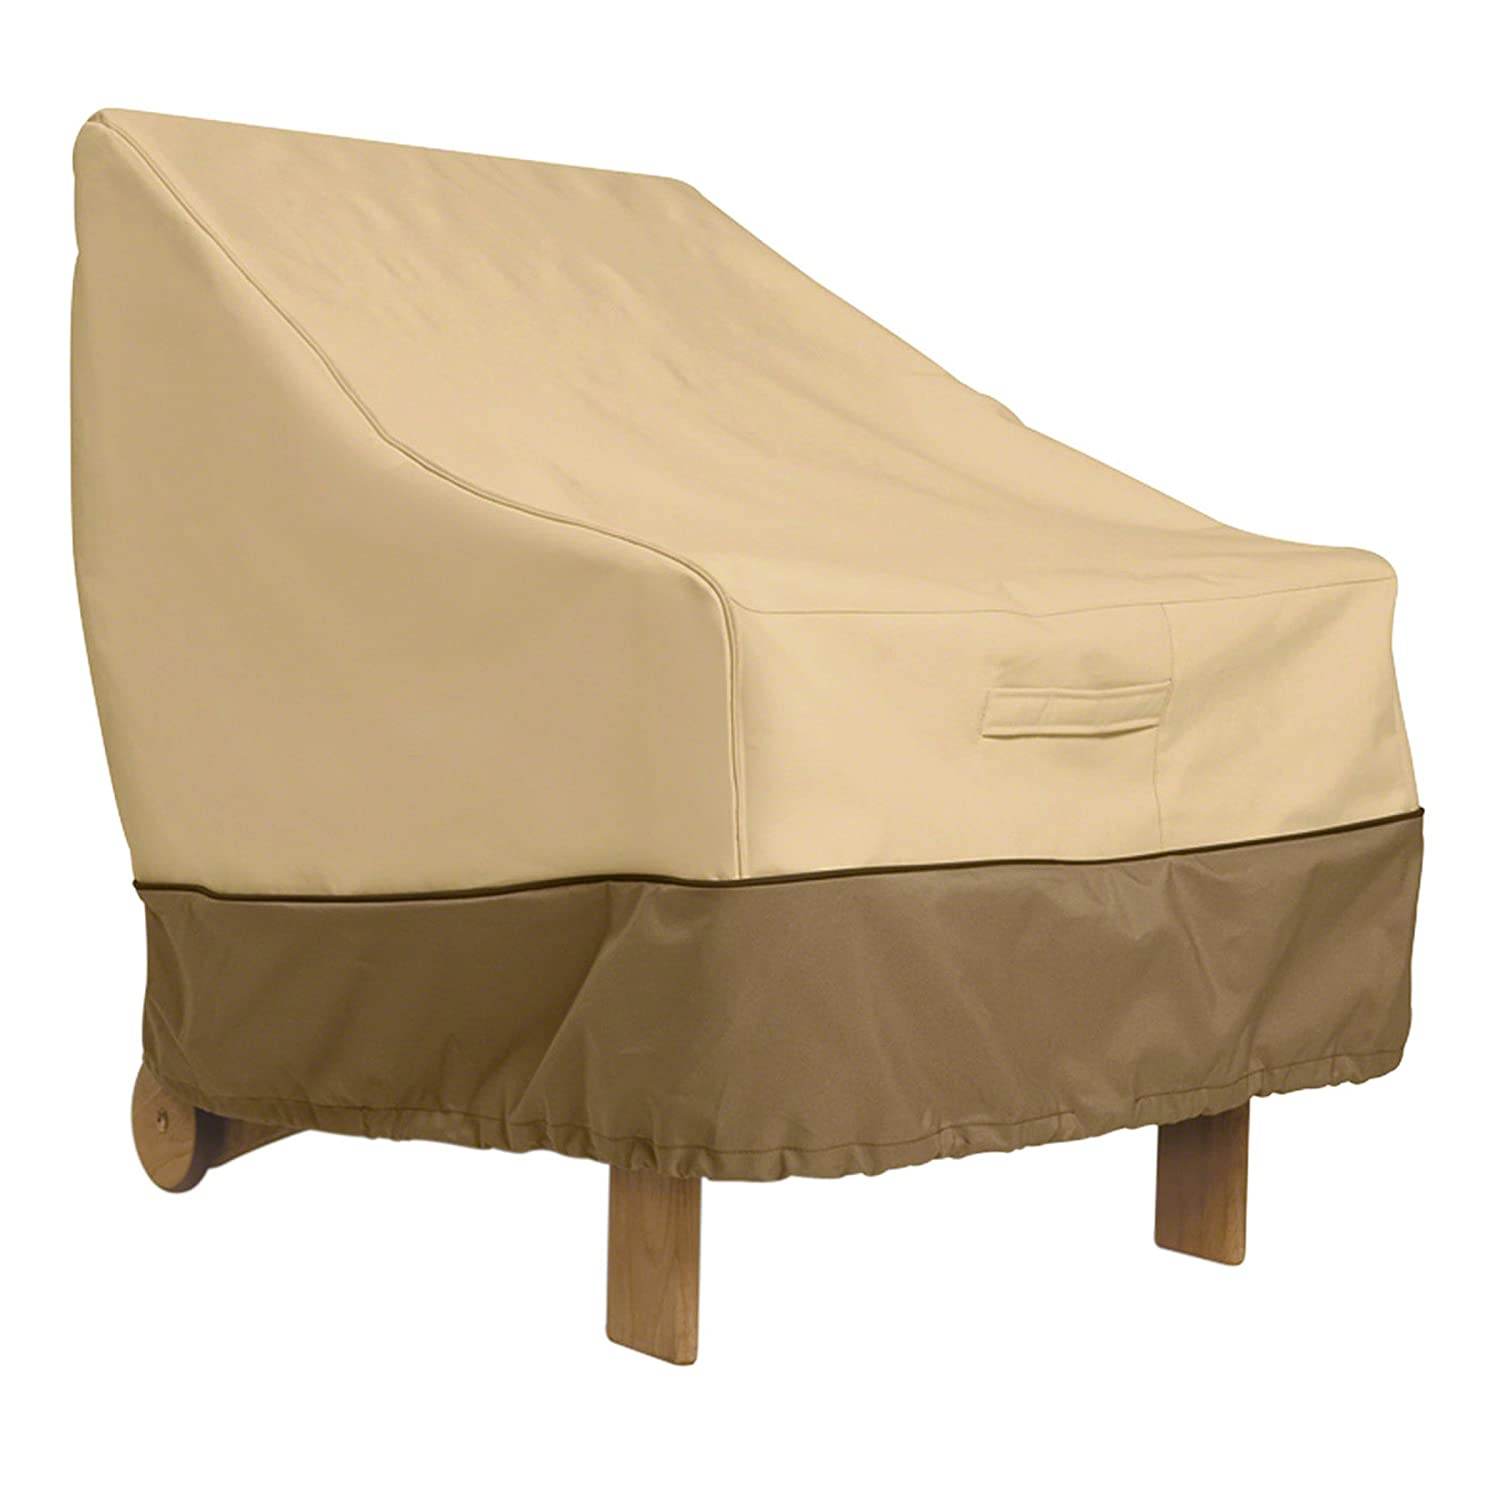 Amazon.com: Patio Furniture Covers: Patio, Lawn & Garden: Chairs